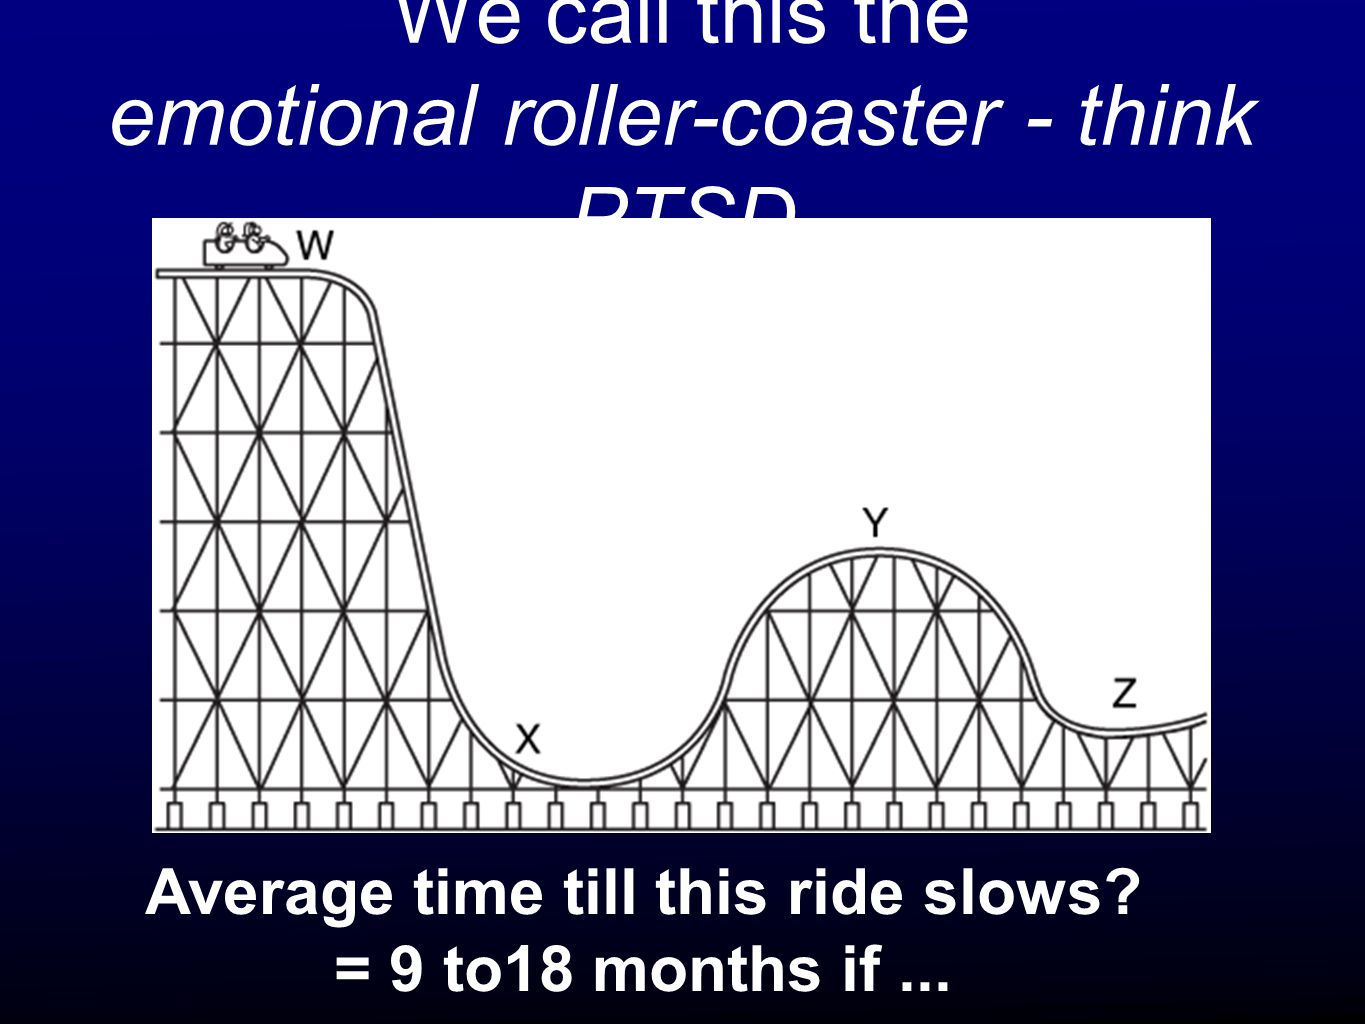 We call this the emotional roller-coaster - think PTSD